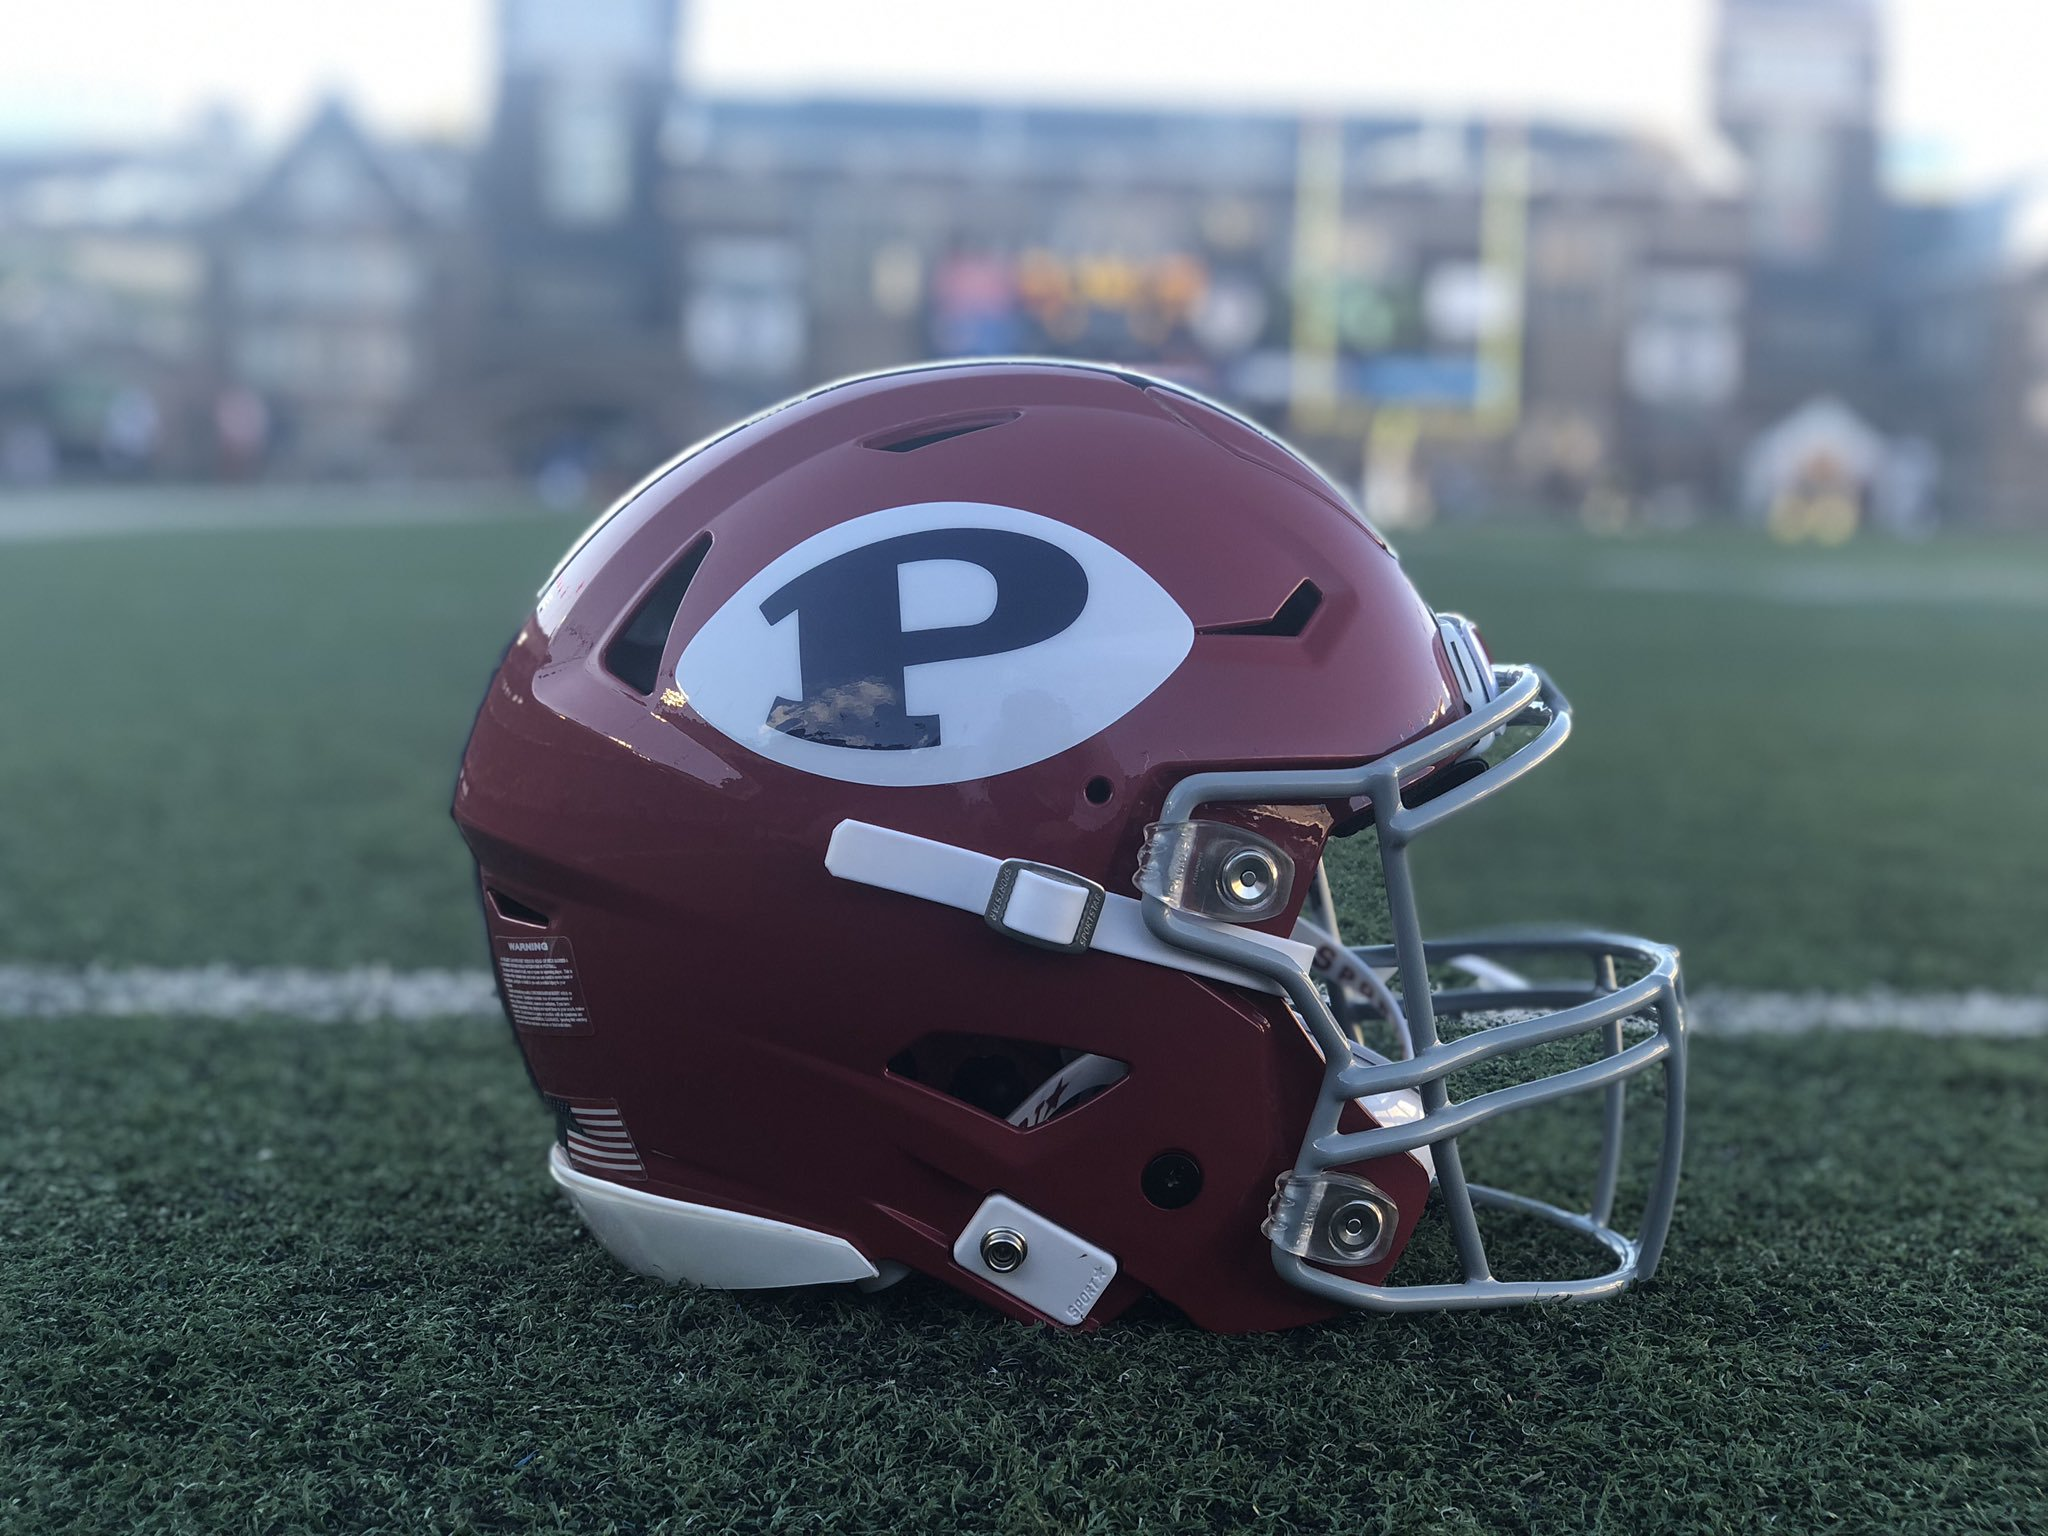 Penn football begins Ivy League play with 28-15 loss to Dartmouth